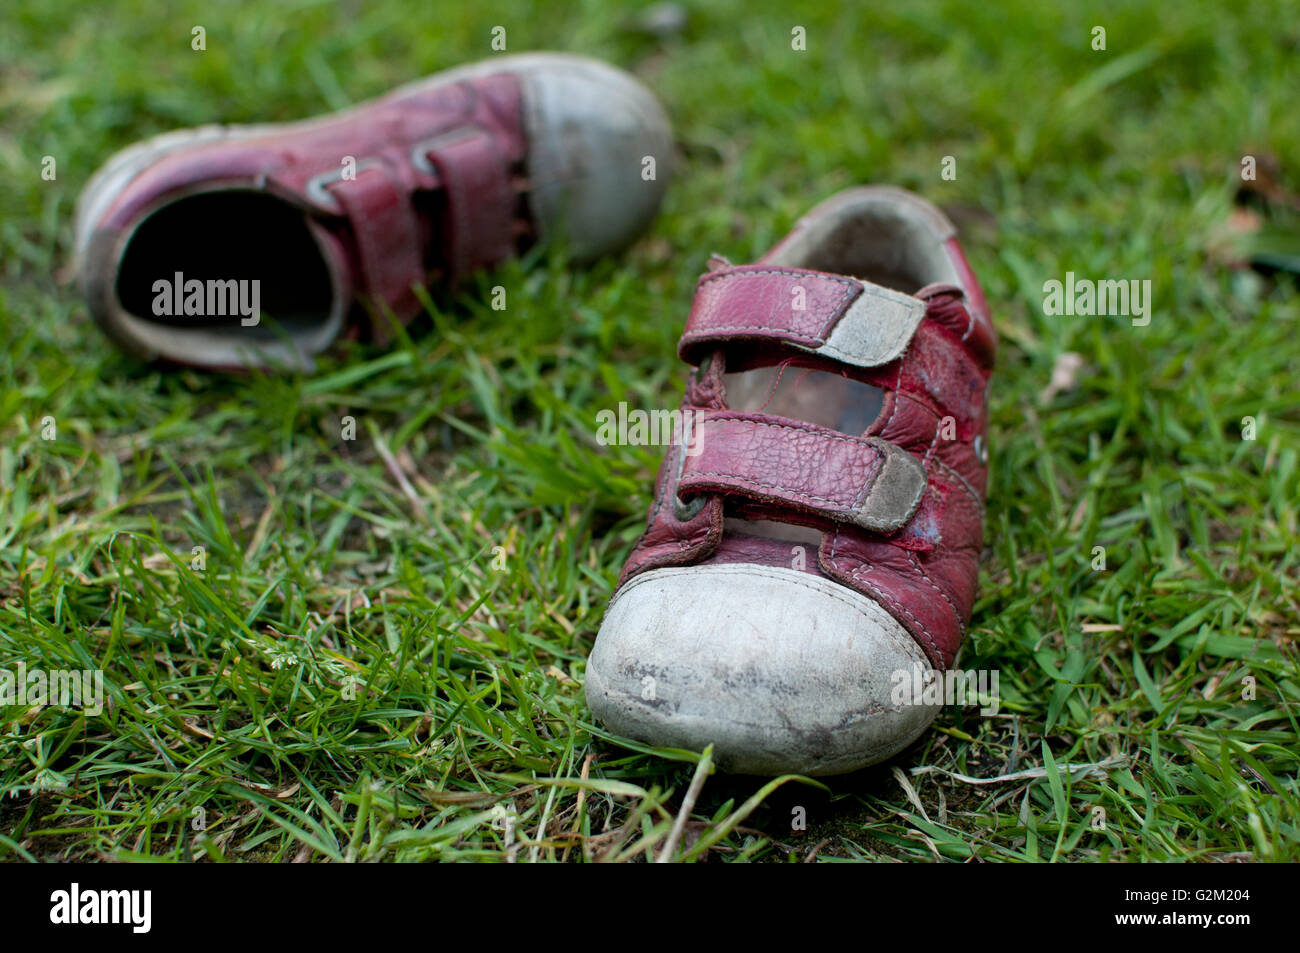 children's shoes - Stock Image